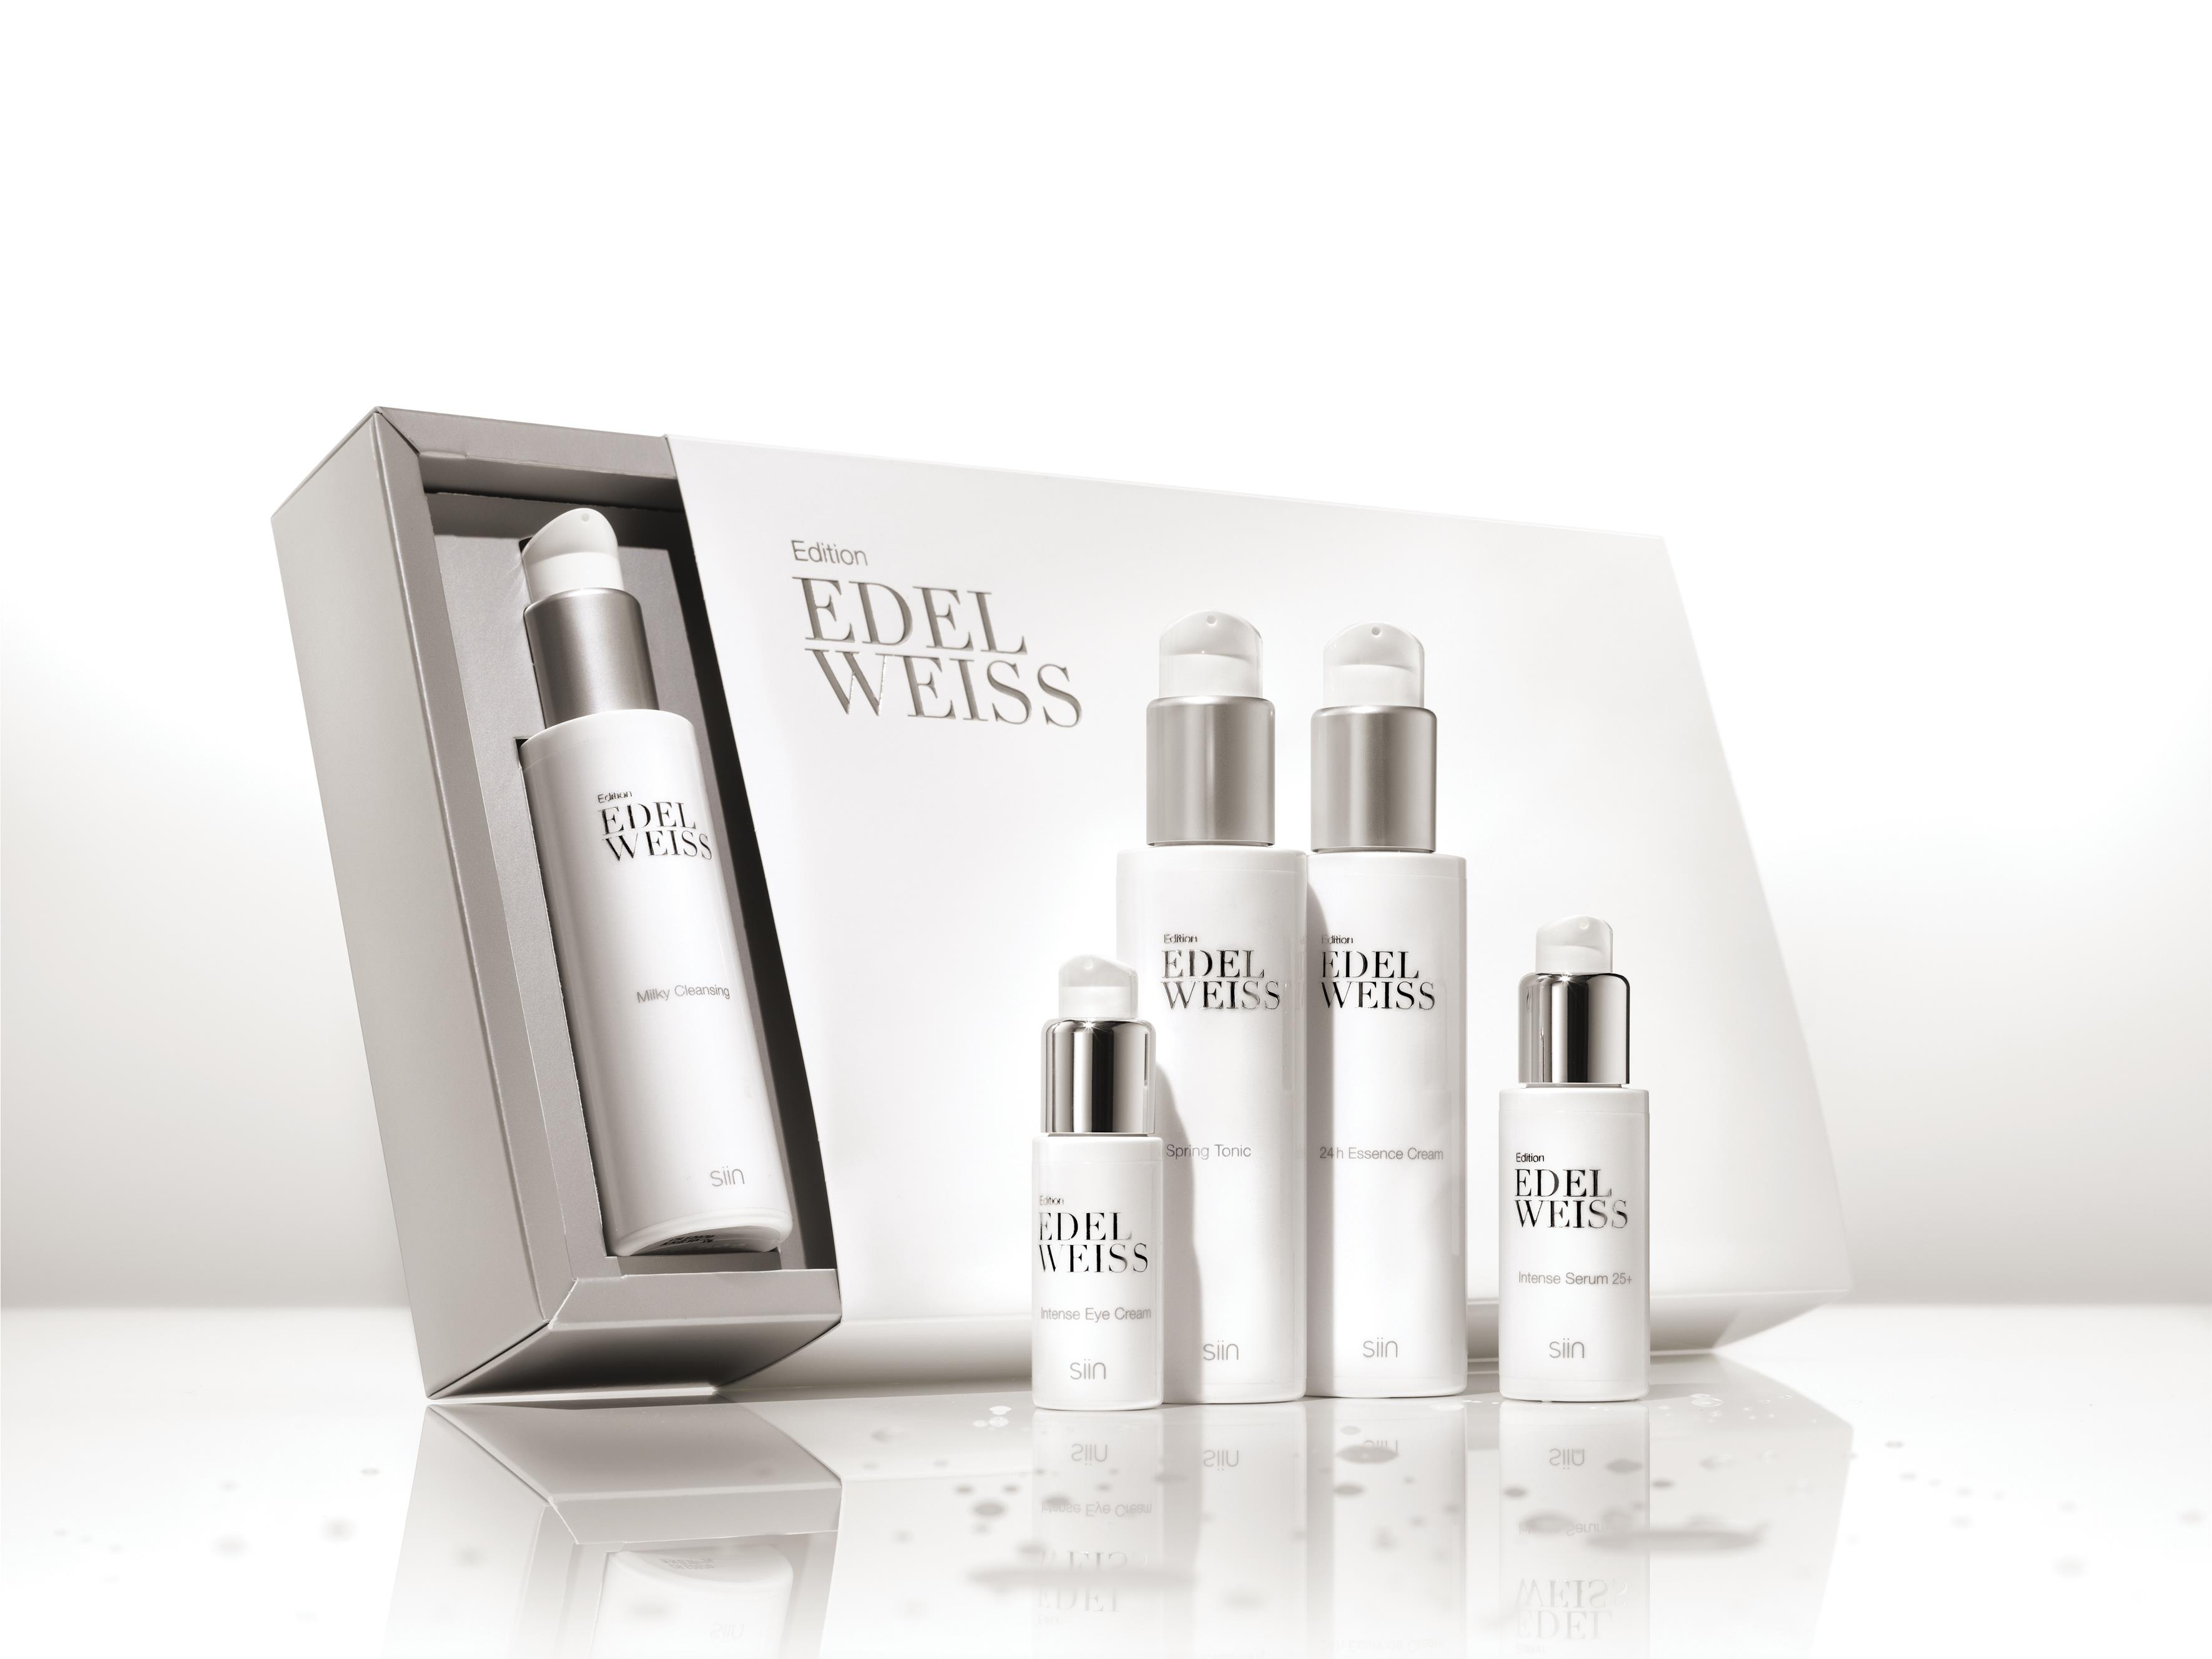 Edition Edelweiss Beauty Set complete 50+